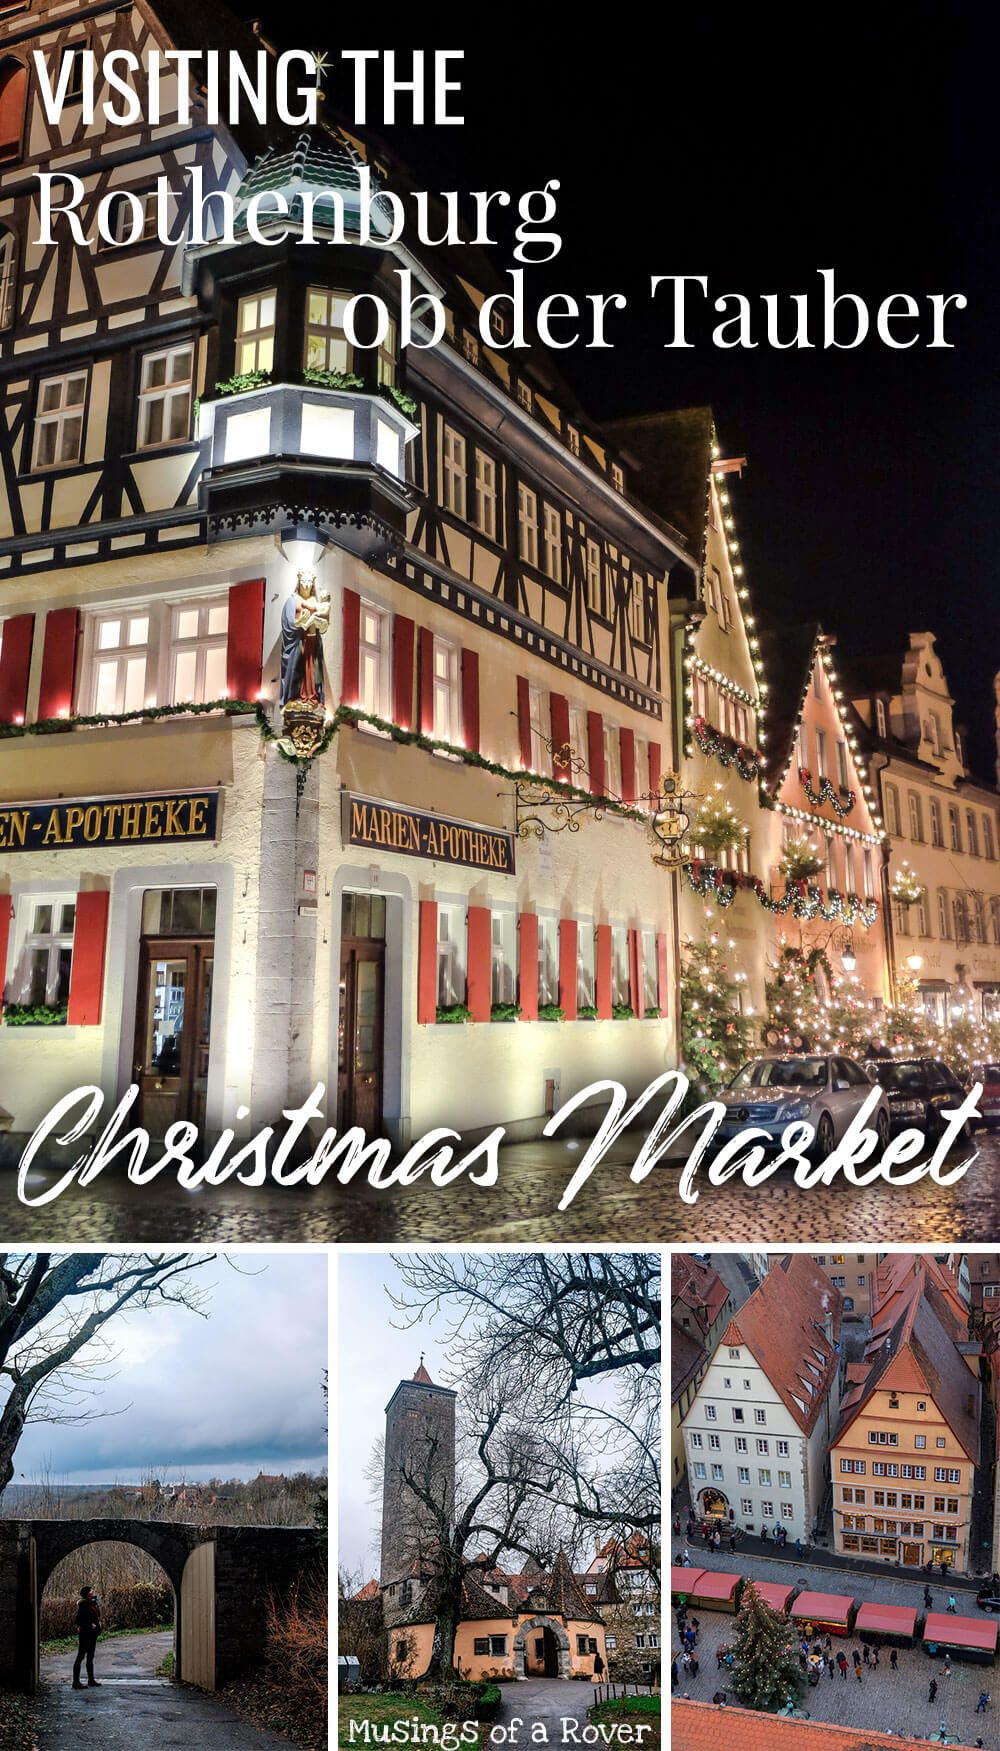 Interested in visiting the Rothenburg Christmas Market? Find out what to expect and what else you can do in this medieval town in Germany! Rothenburg ob der Tauber, Germany